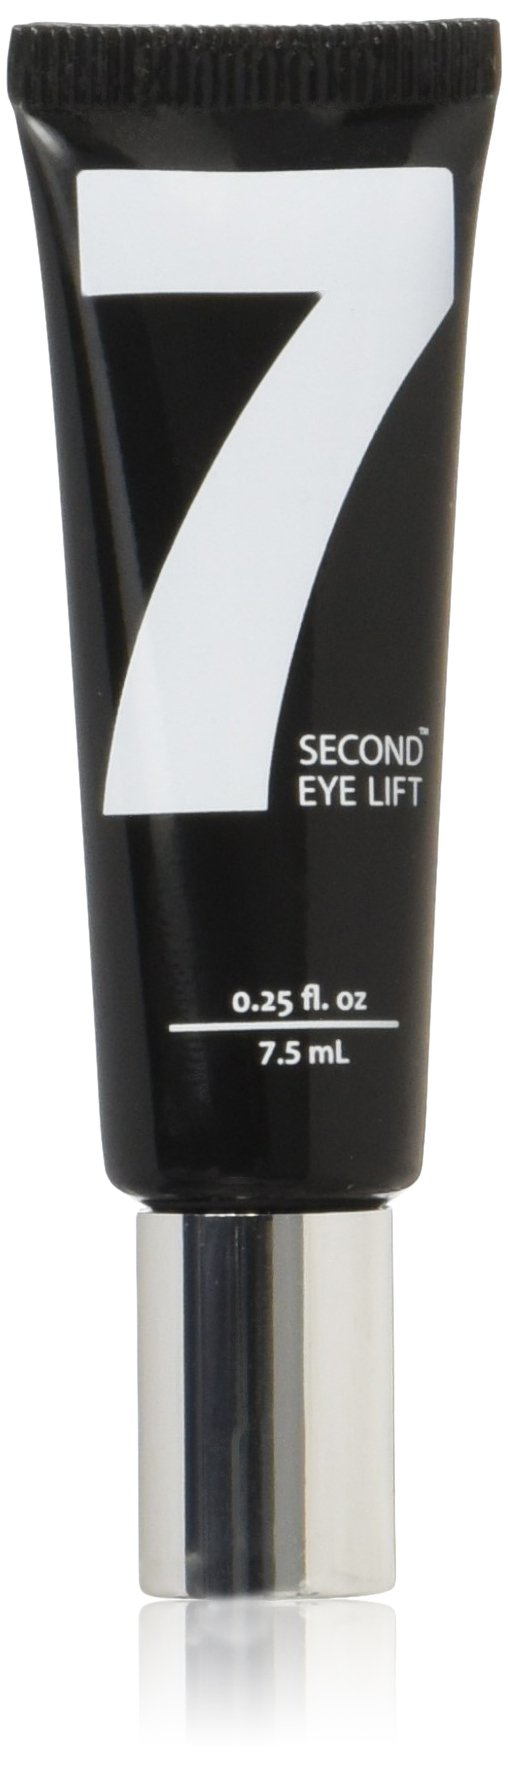 SNC Labs 7 Second Eye Lift Cream for Dark Circles, Puffiness and Wrinkles, 7.5 ml